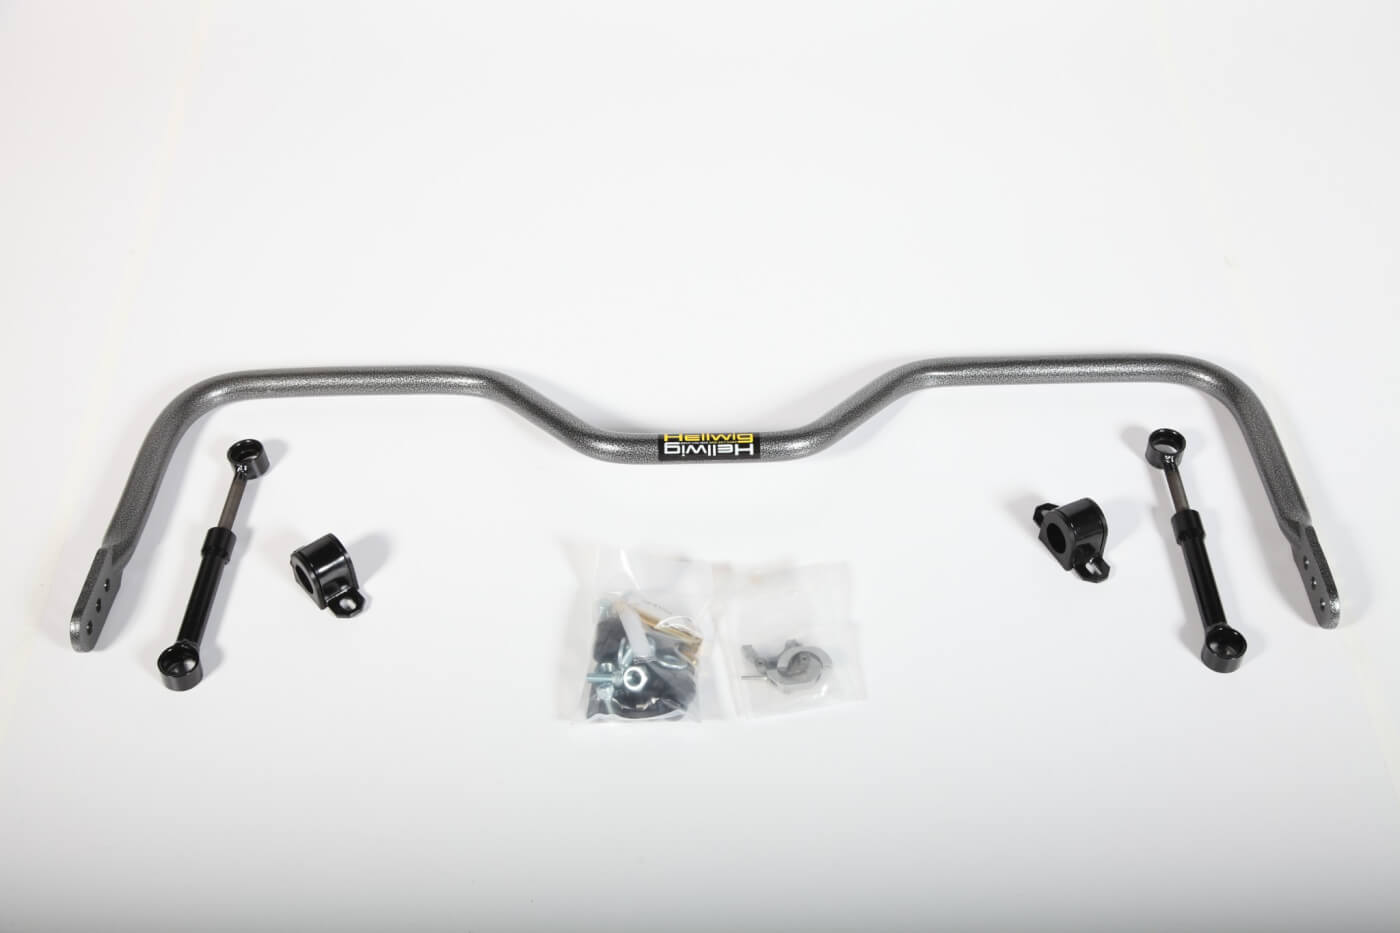 2014 Dodge Ram 2500 Big Wig Rear Sway Bar